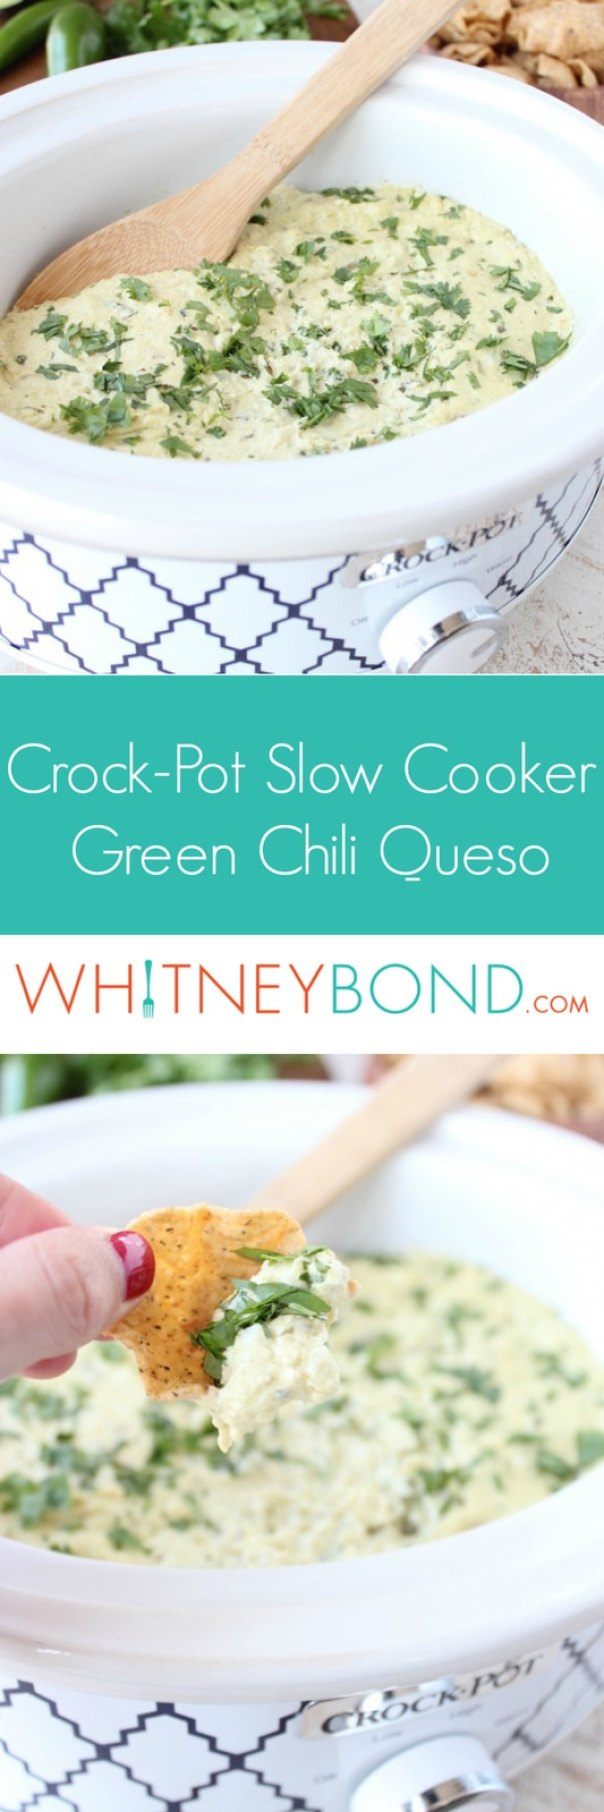 Slow Cooker Green Chili Queso Dip Recipe